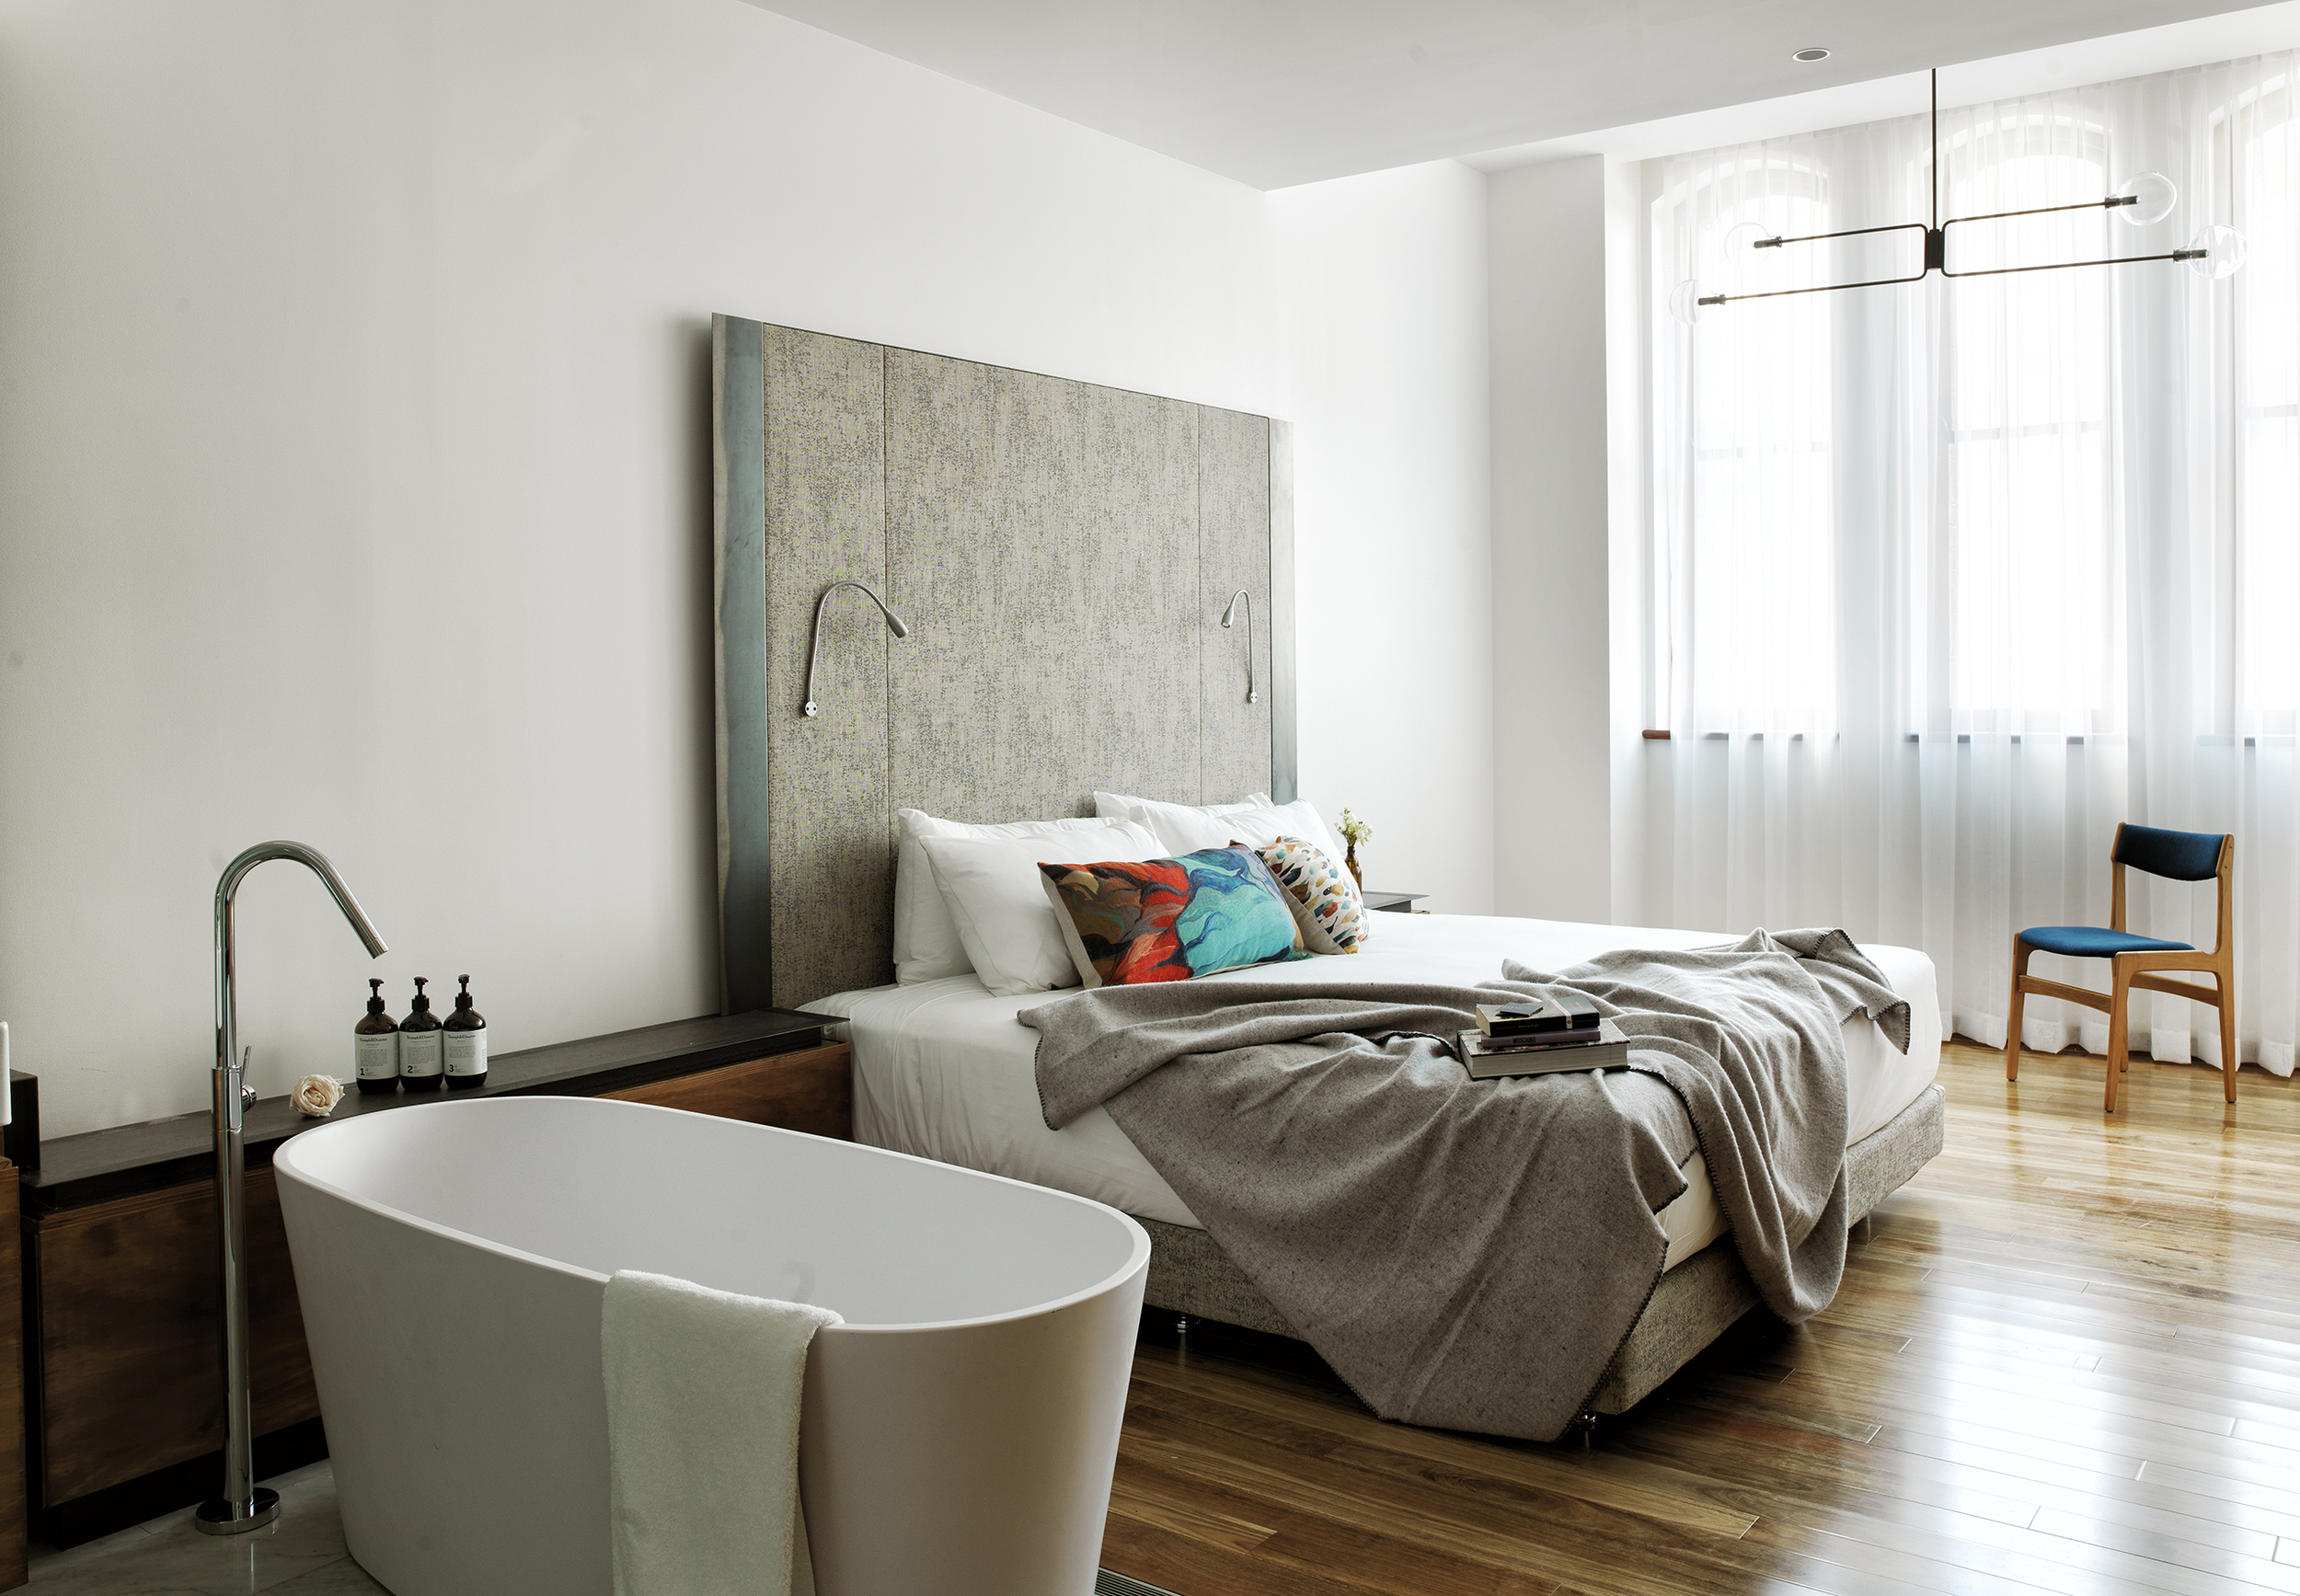 OLDCLARE_INTERIOR_ROOMFIVE_0015.jpg